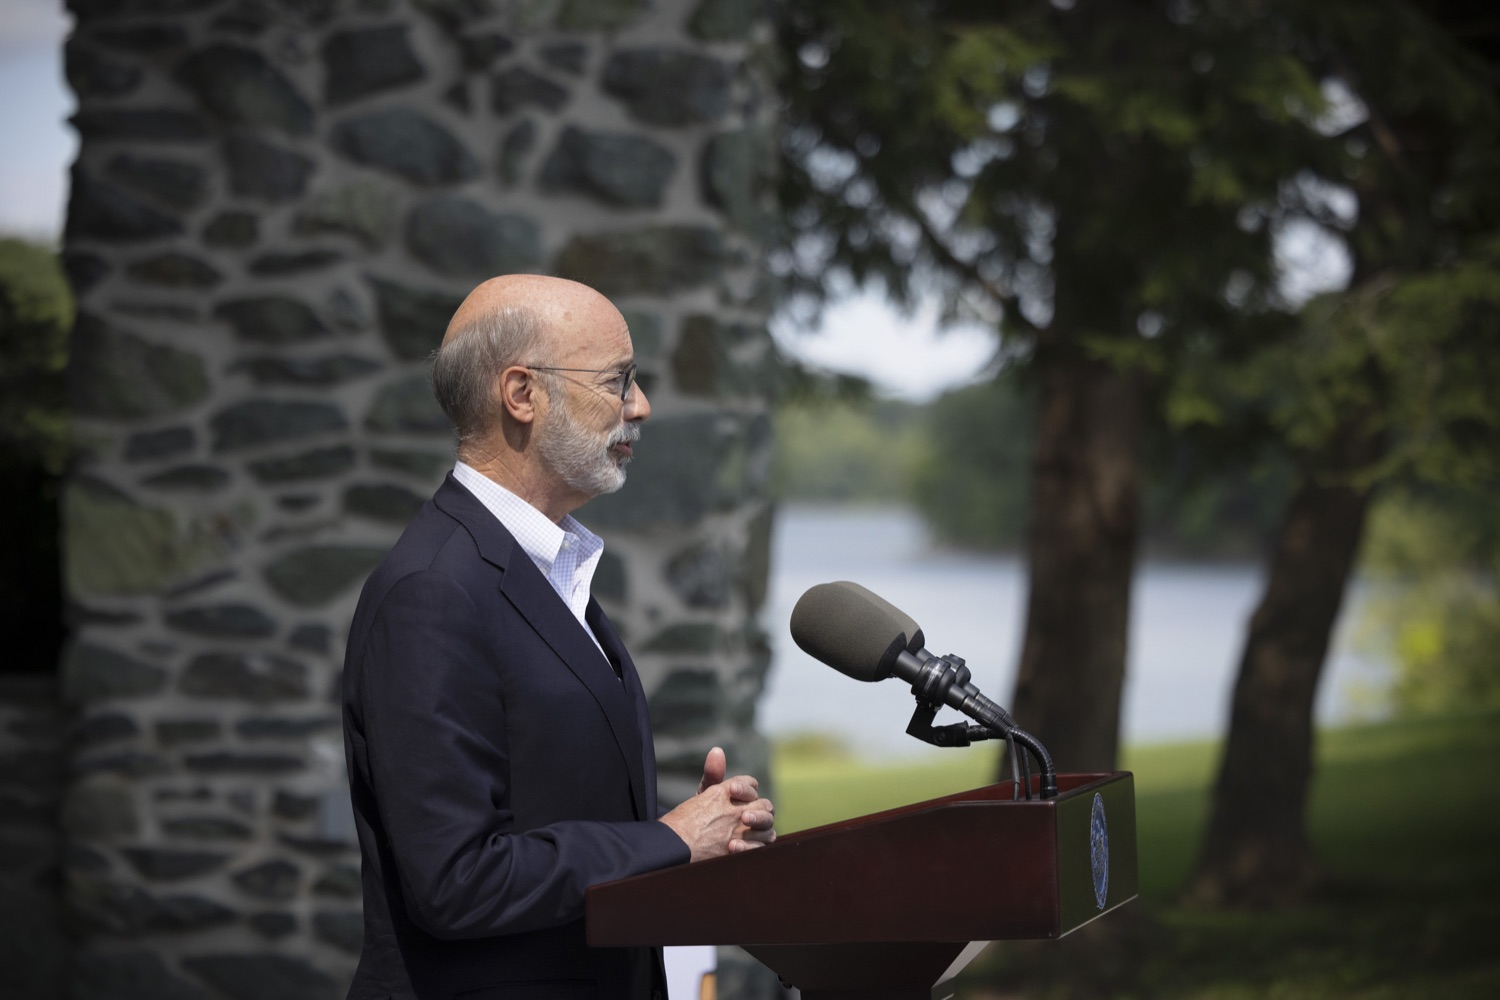 """<a href=""""https://filesource.wostreaming.net/commonwealthofpa/photo/19111_gov_parkVaccines_dz_007.jpg"""" target=""""_blank"""">⇣Download Photo<br></a>Pennsylvania Governor Tom Wolf speaking with the press.  Governor Tom Wolf today announced that the Department of Health (DOH) and Department of Conservation and Natural Resources (DCNR) are partnering to hold COVID-19 vaccine clinics at five state parks across the commonwealth to help expand access to the COVID-19 vaccine.  Harrisburg, PA -- September 10, 2021"""